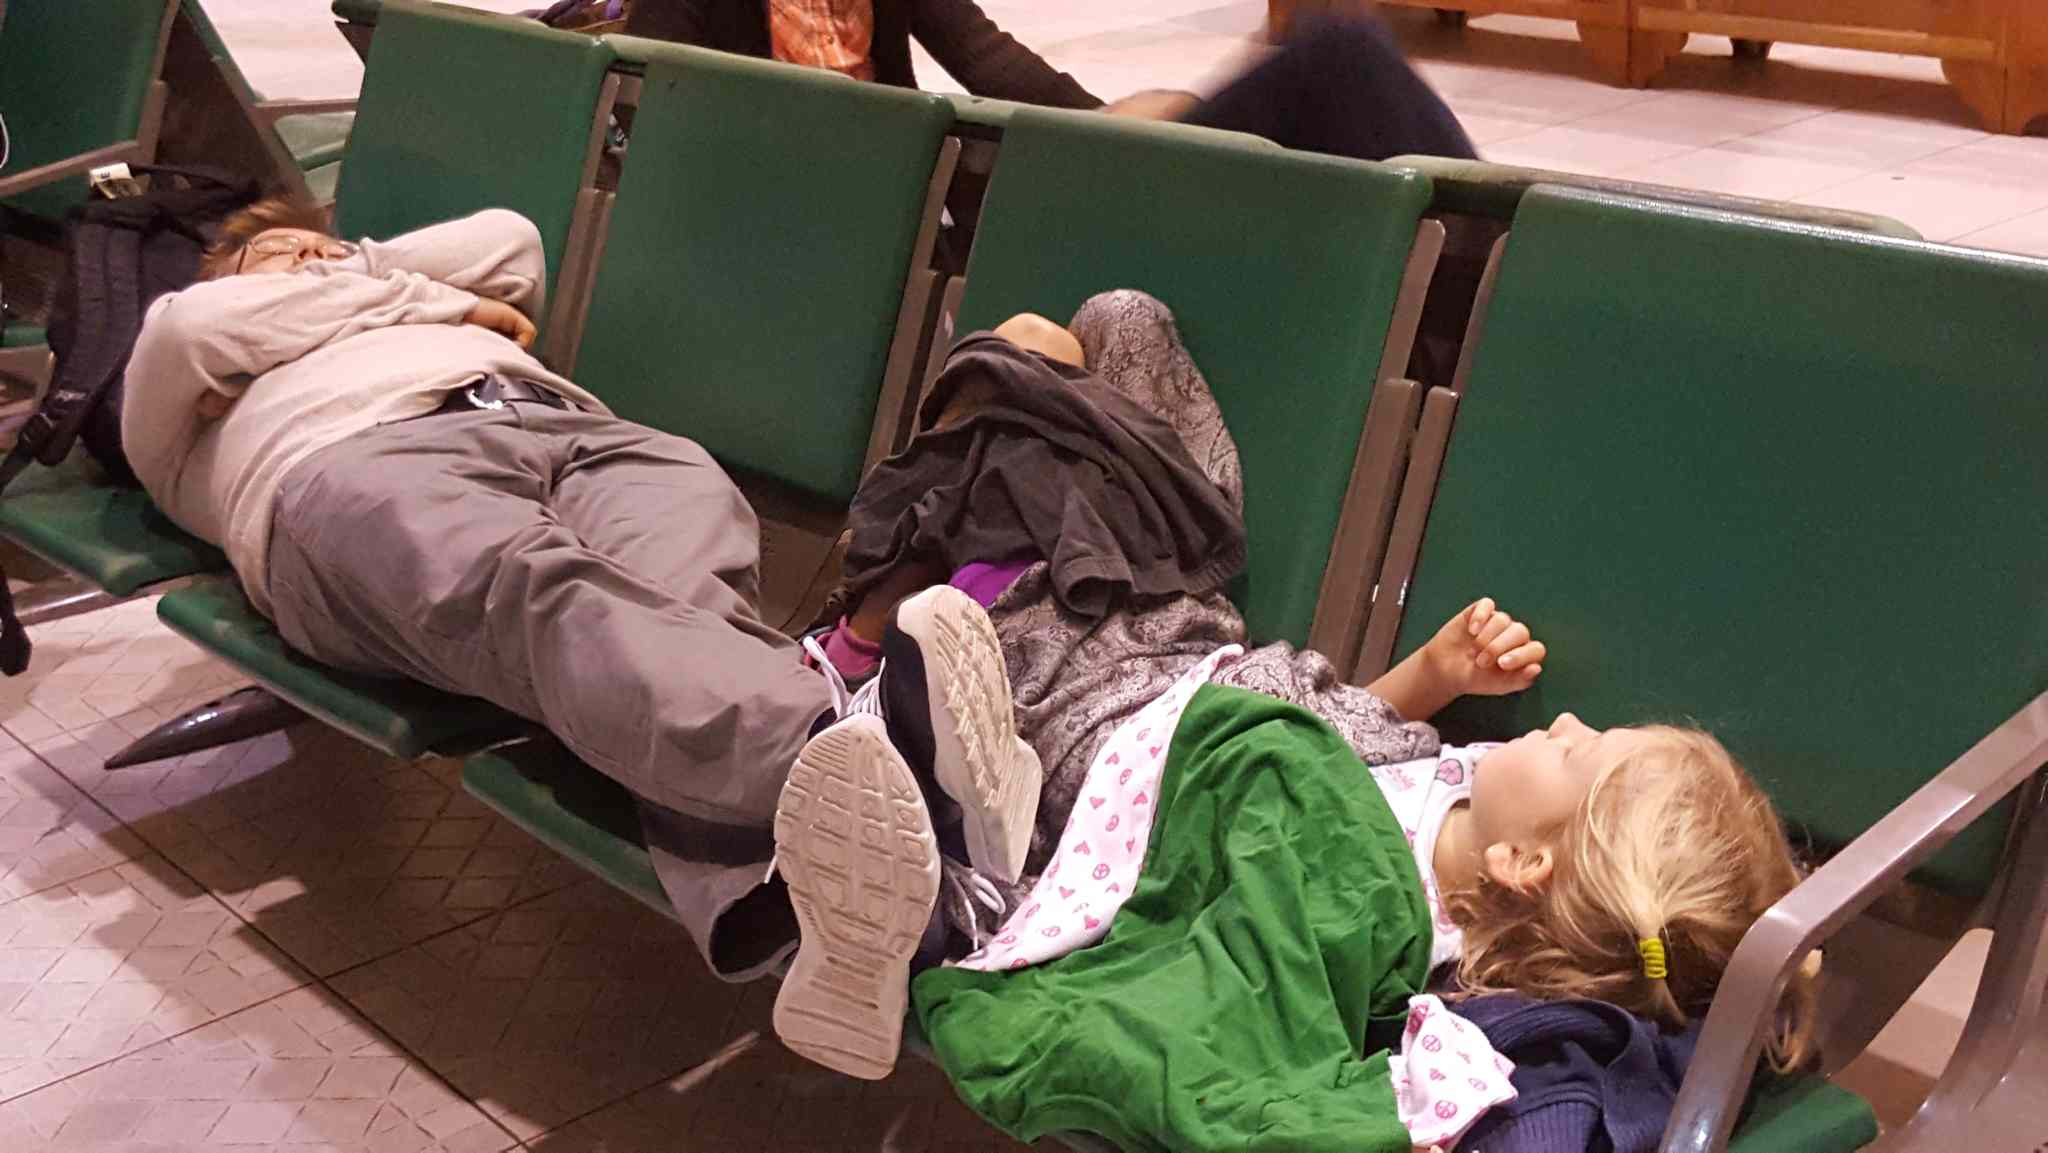 Passengers sleeping on seats at the airport in Cuba.